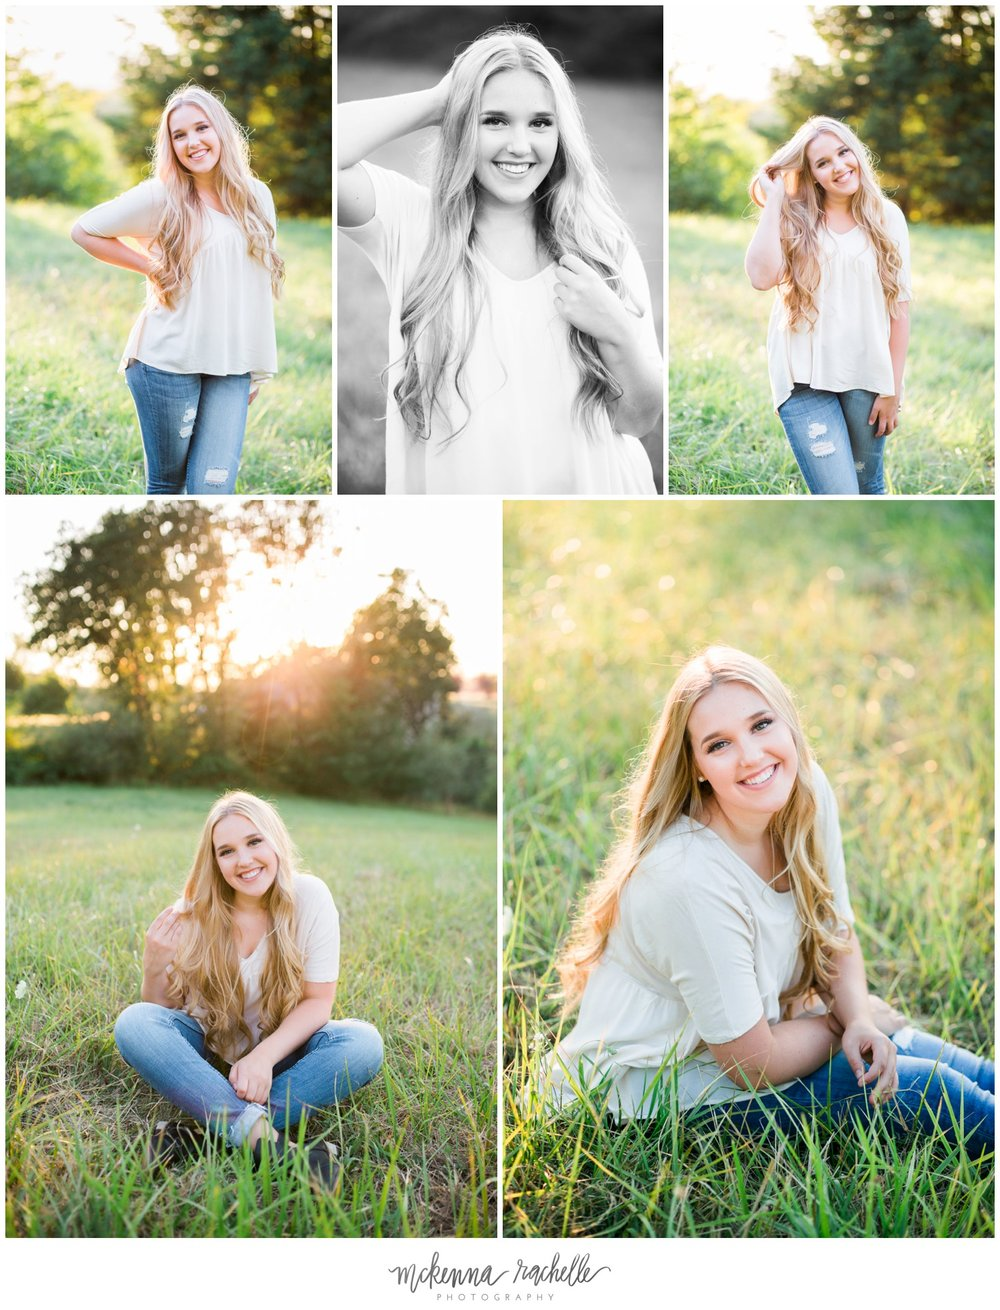 High school senior photographer serves Portland, Hillsboro, and Beaverton Oregon.